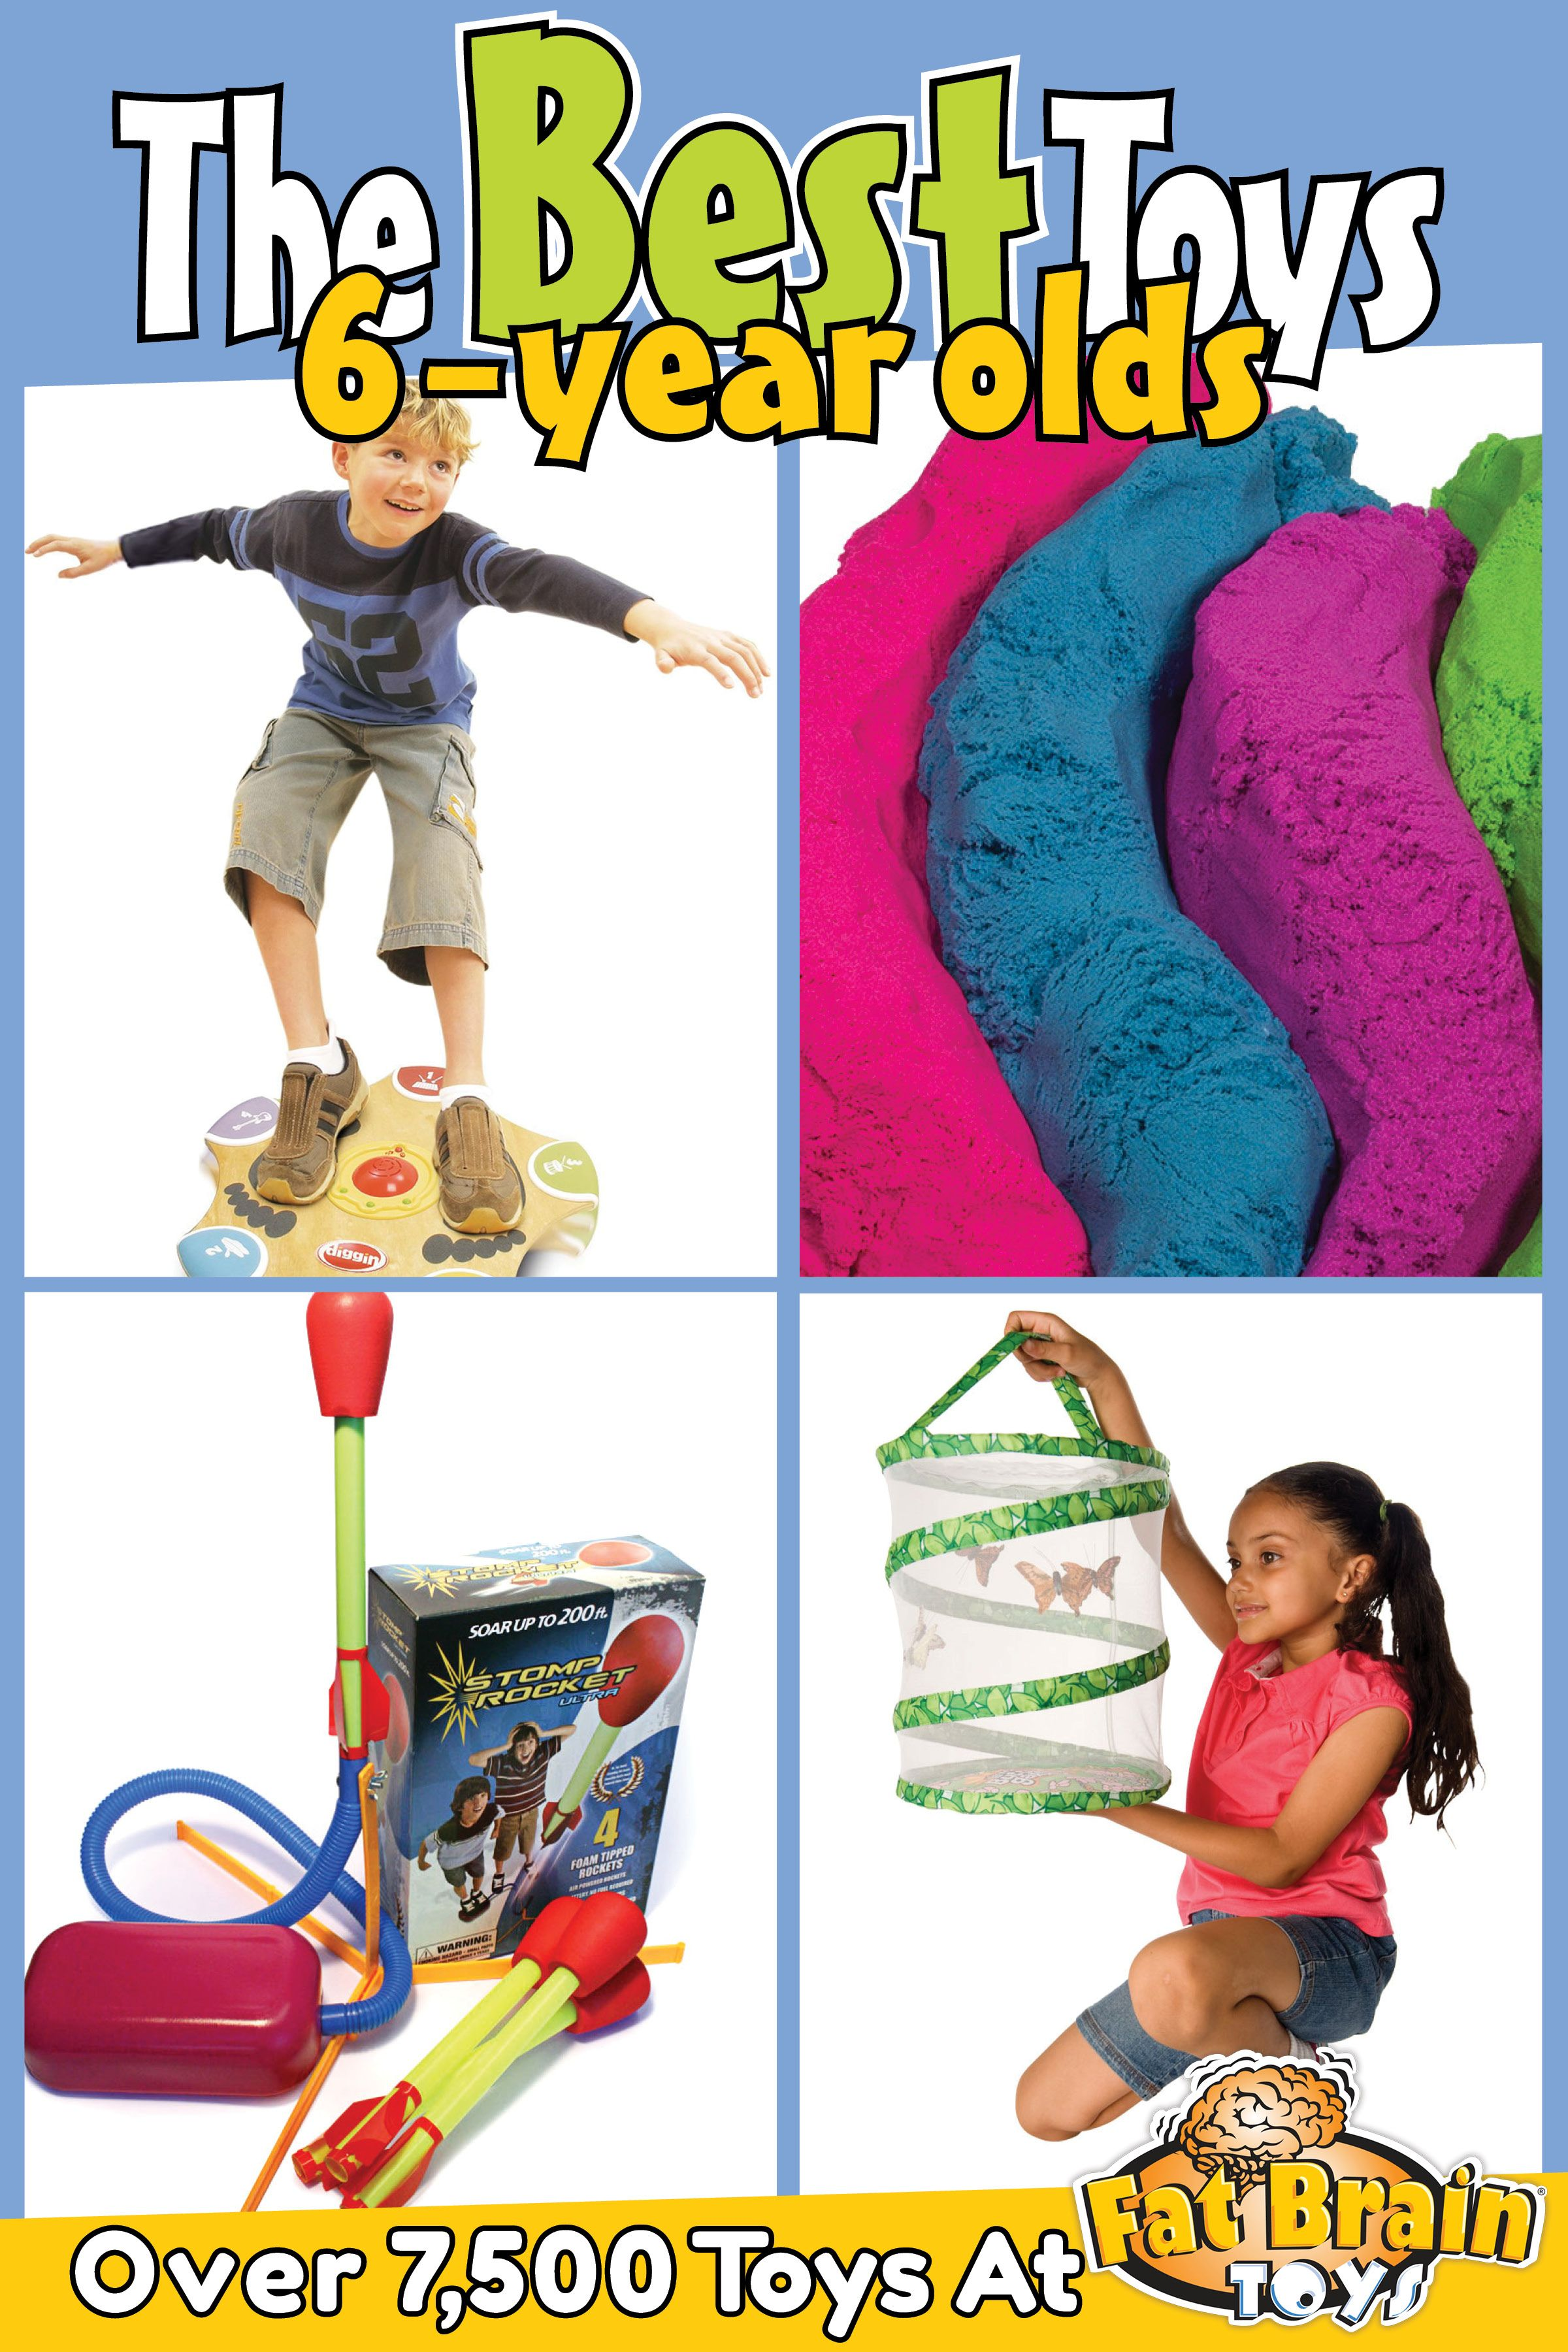 The Best 6 Year Old Toys, Games, And Gifts From